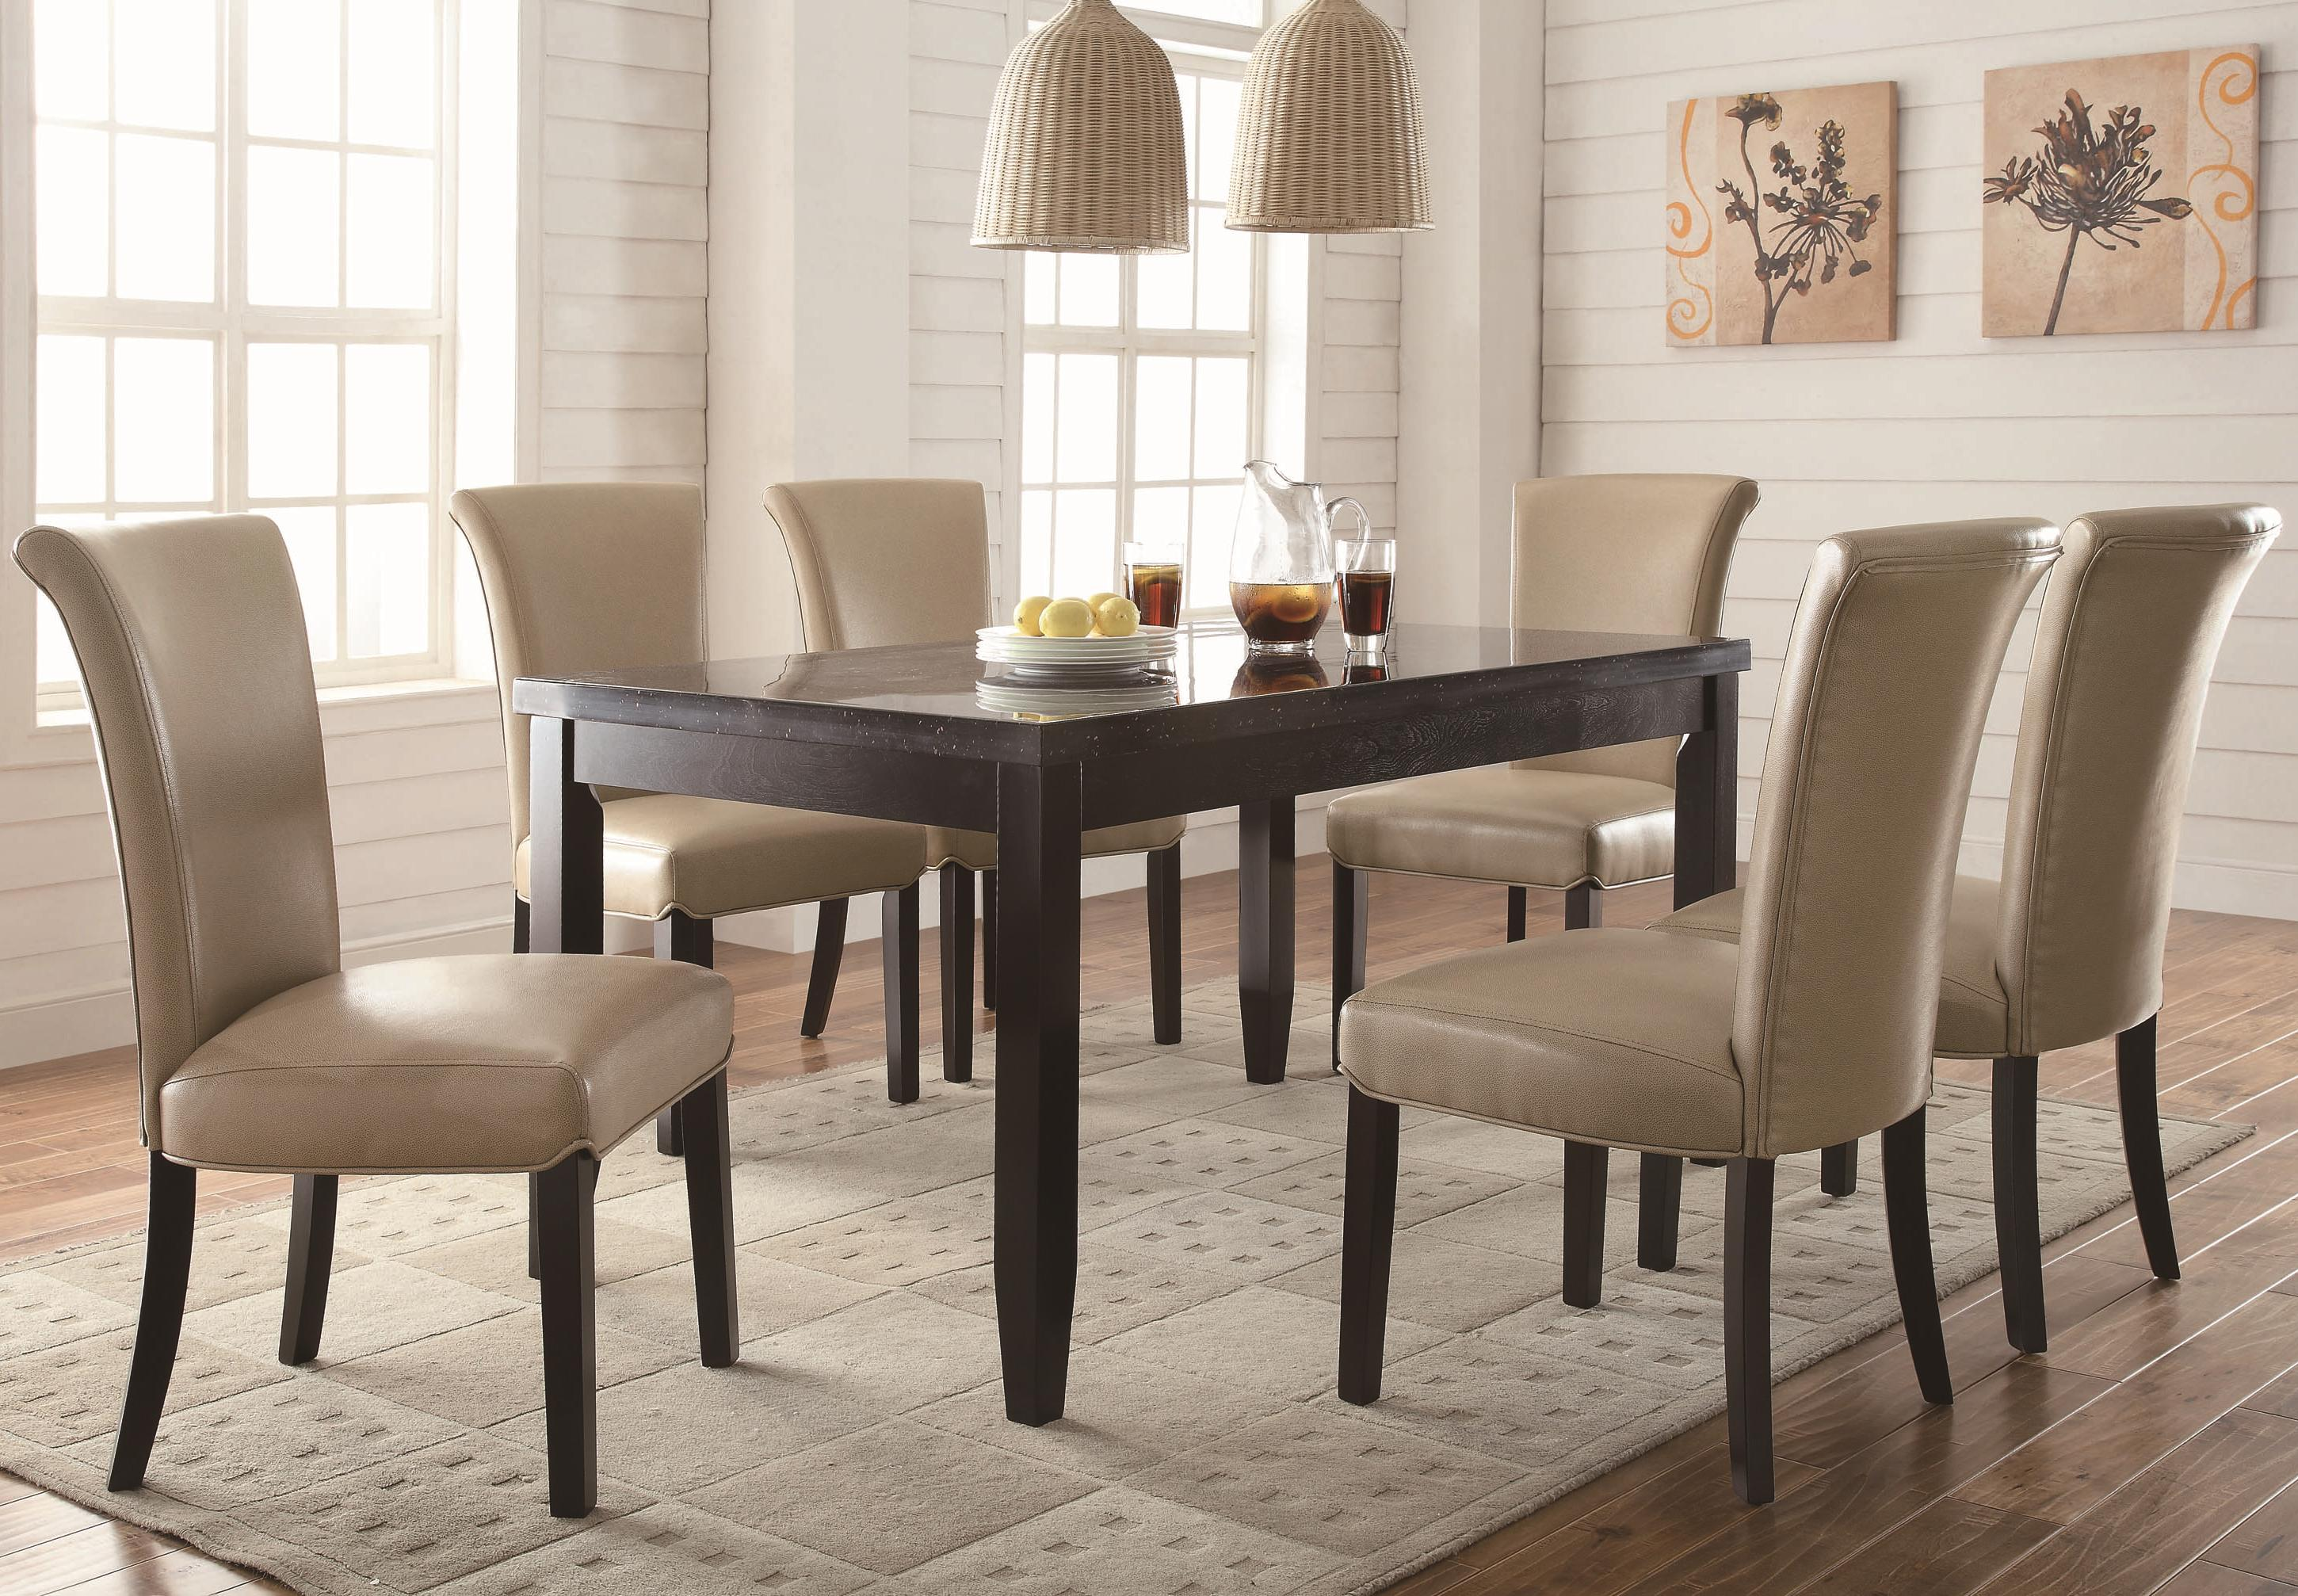 Dining Room Chair Sets Newbridge 7 Piece Dining Table Chair Set By Coaster At Michael S Furniture Warehouse